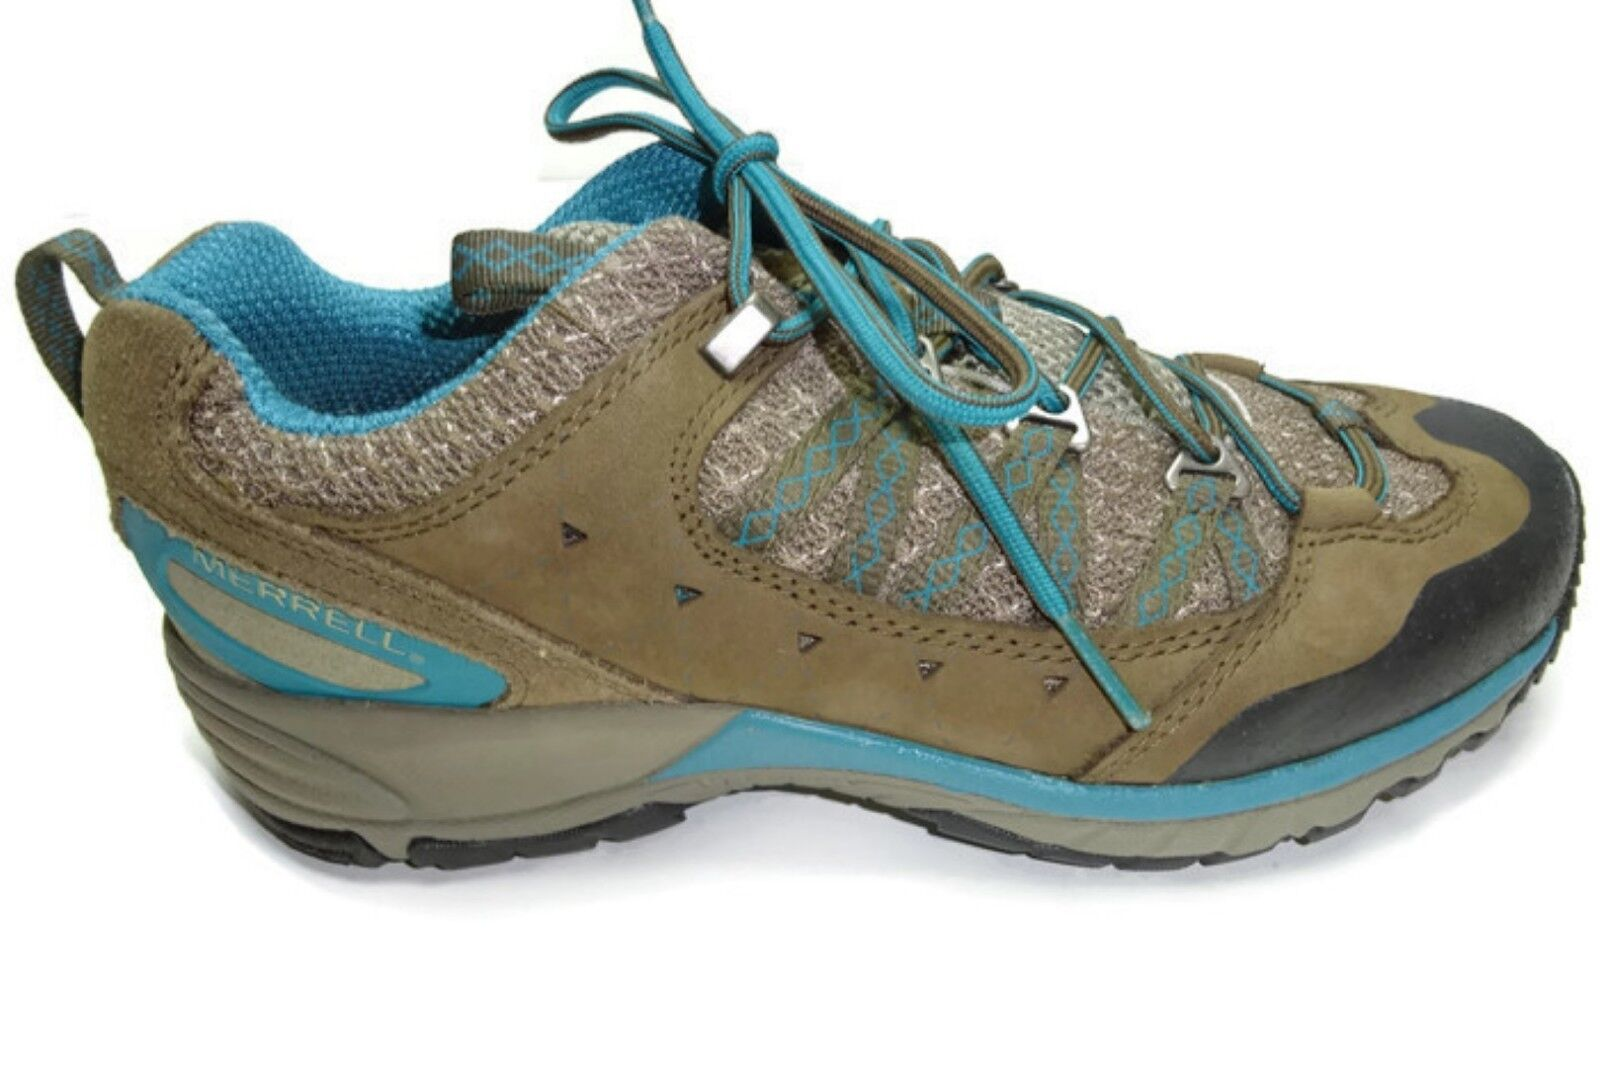 Merrell Avian Femme Marron/teal Light Sport Canteen Casual Hiking